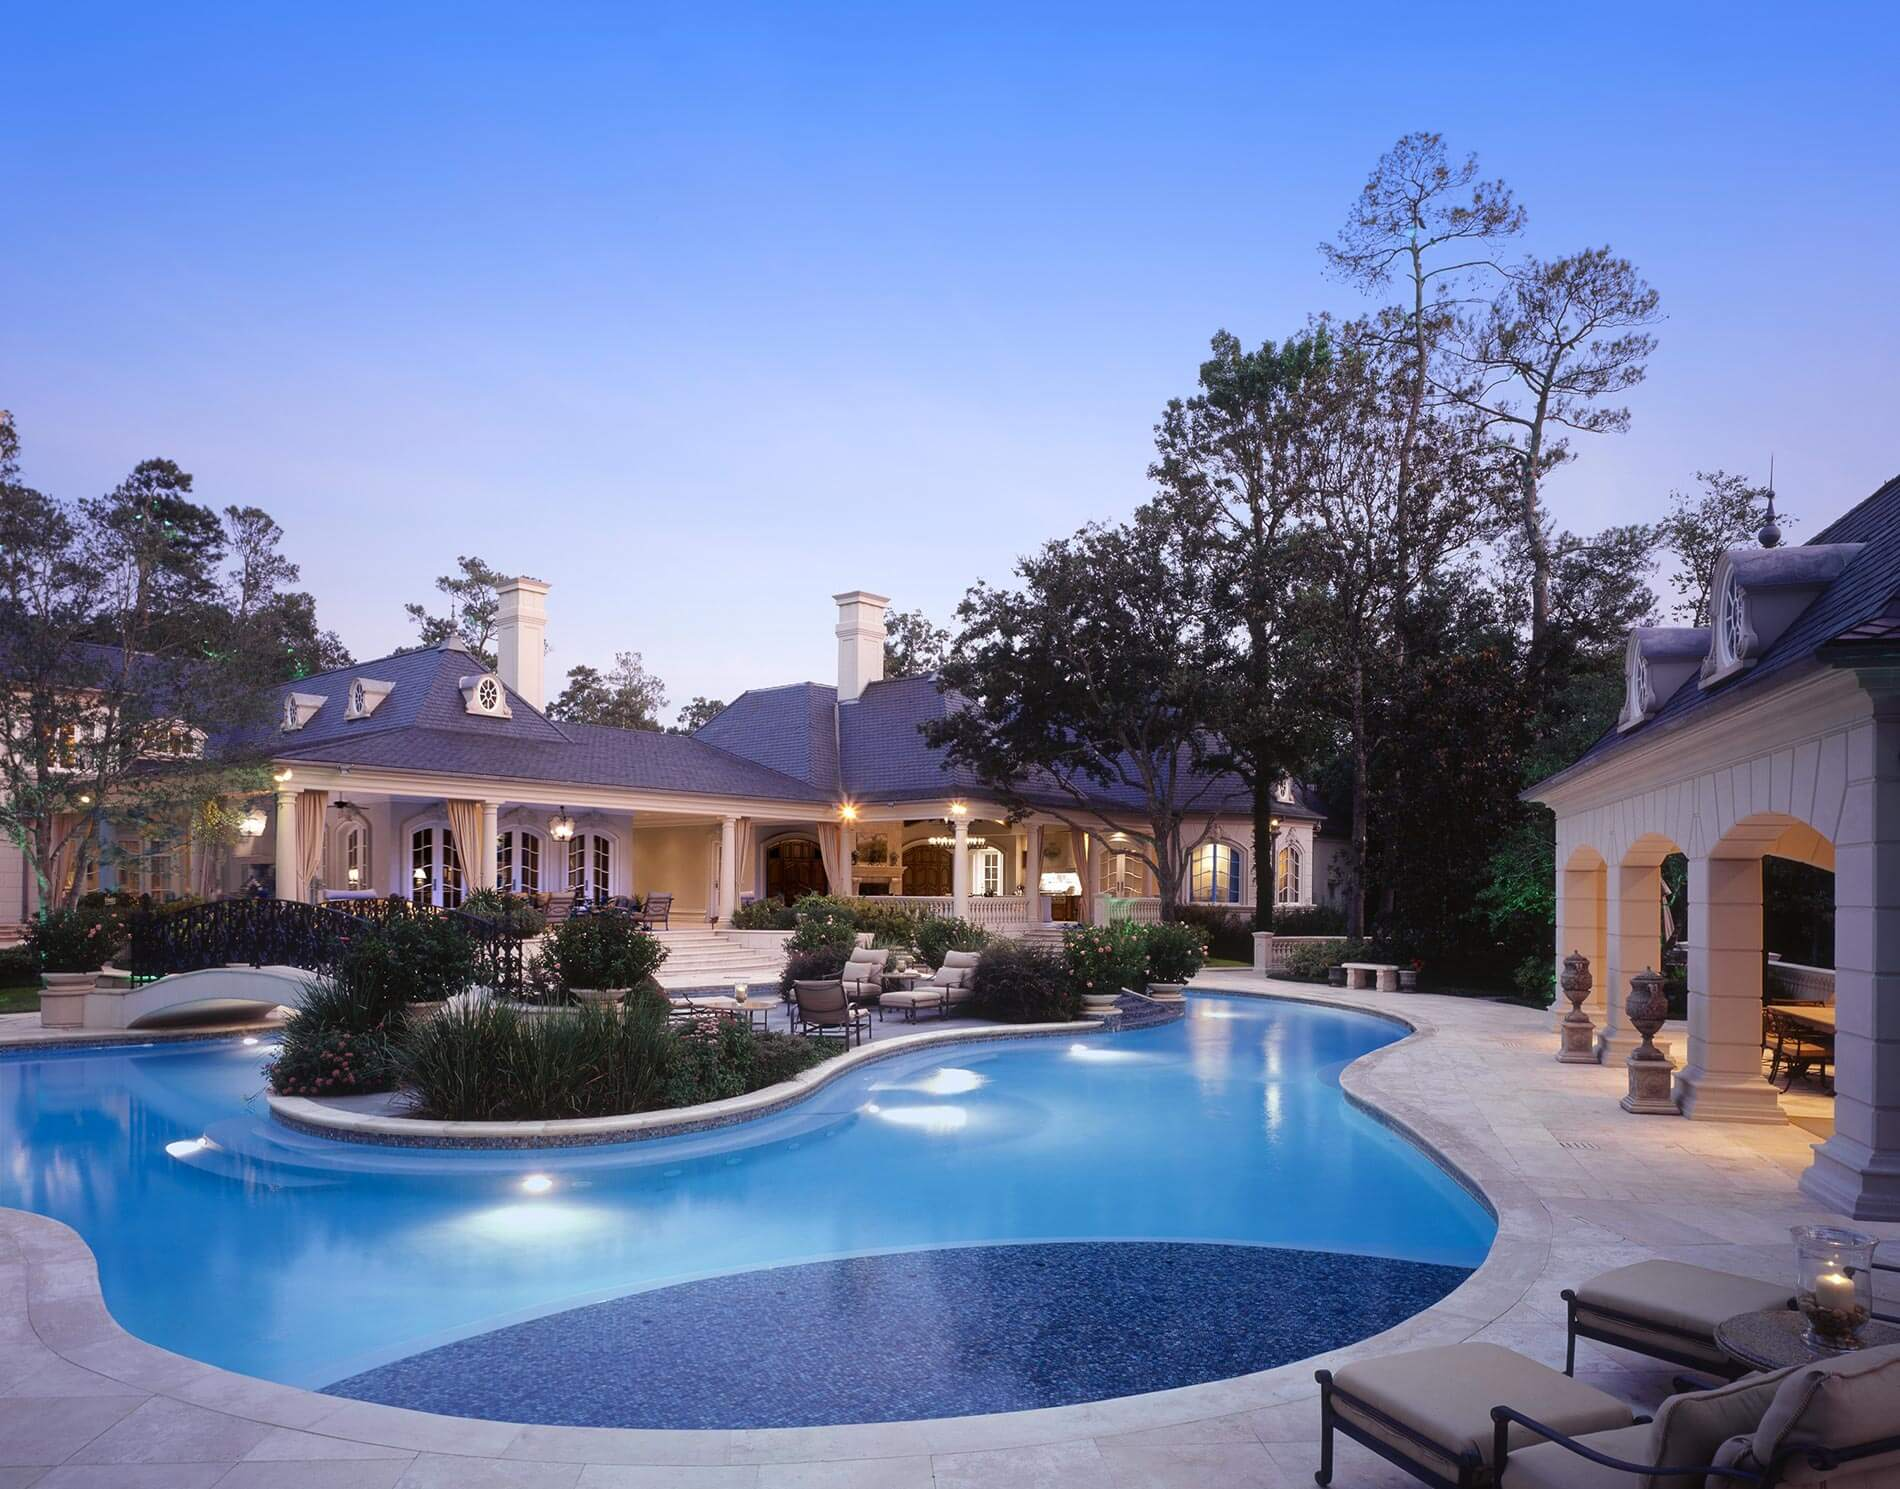 Pool at french chateau